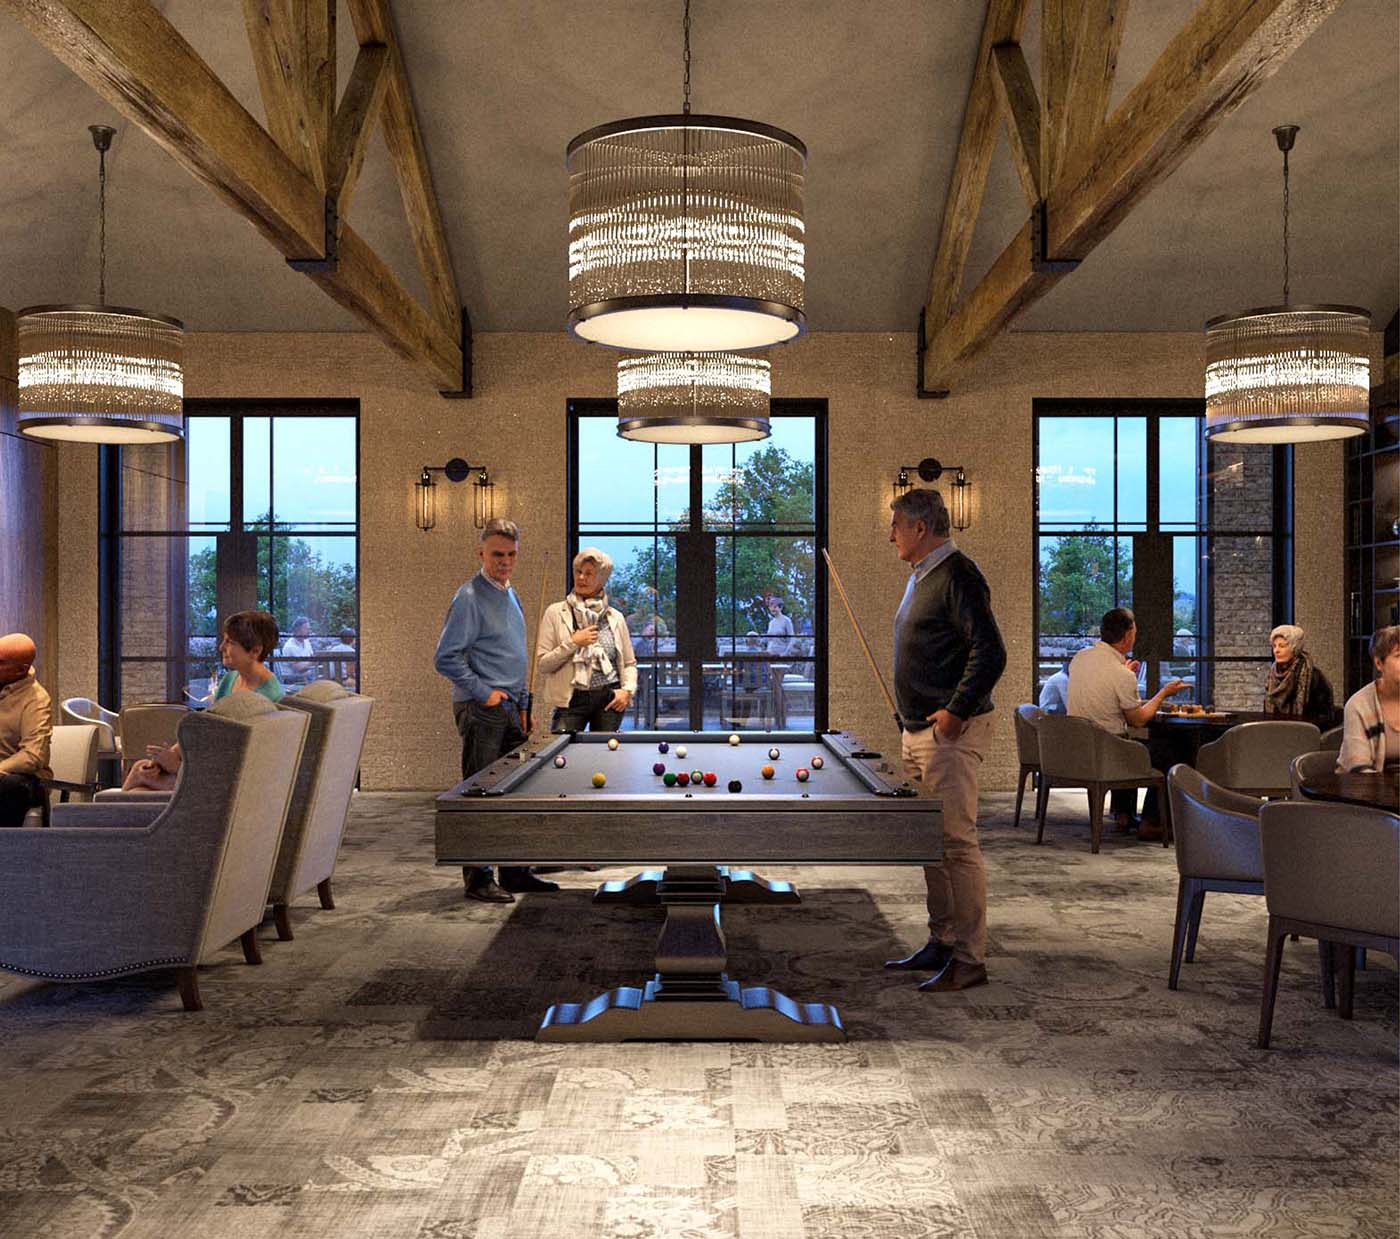 Games room in a retirement village in Bowral, Sydney with people playing billiards.